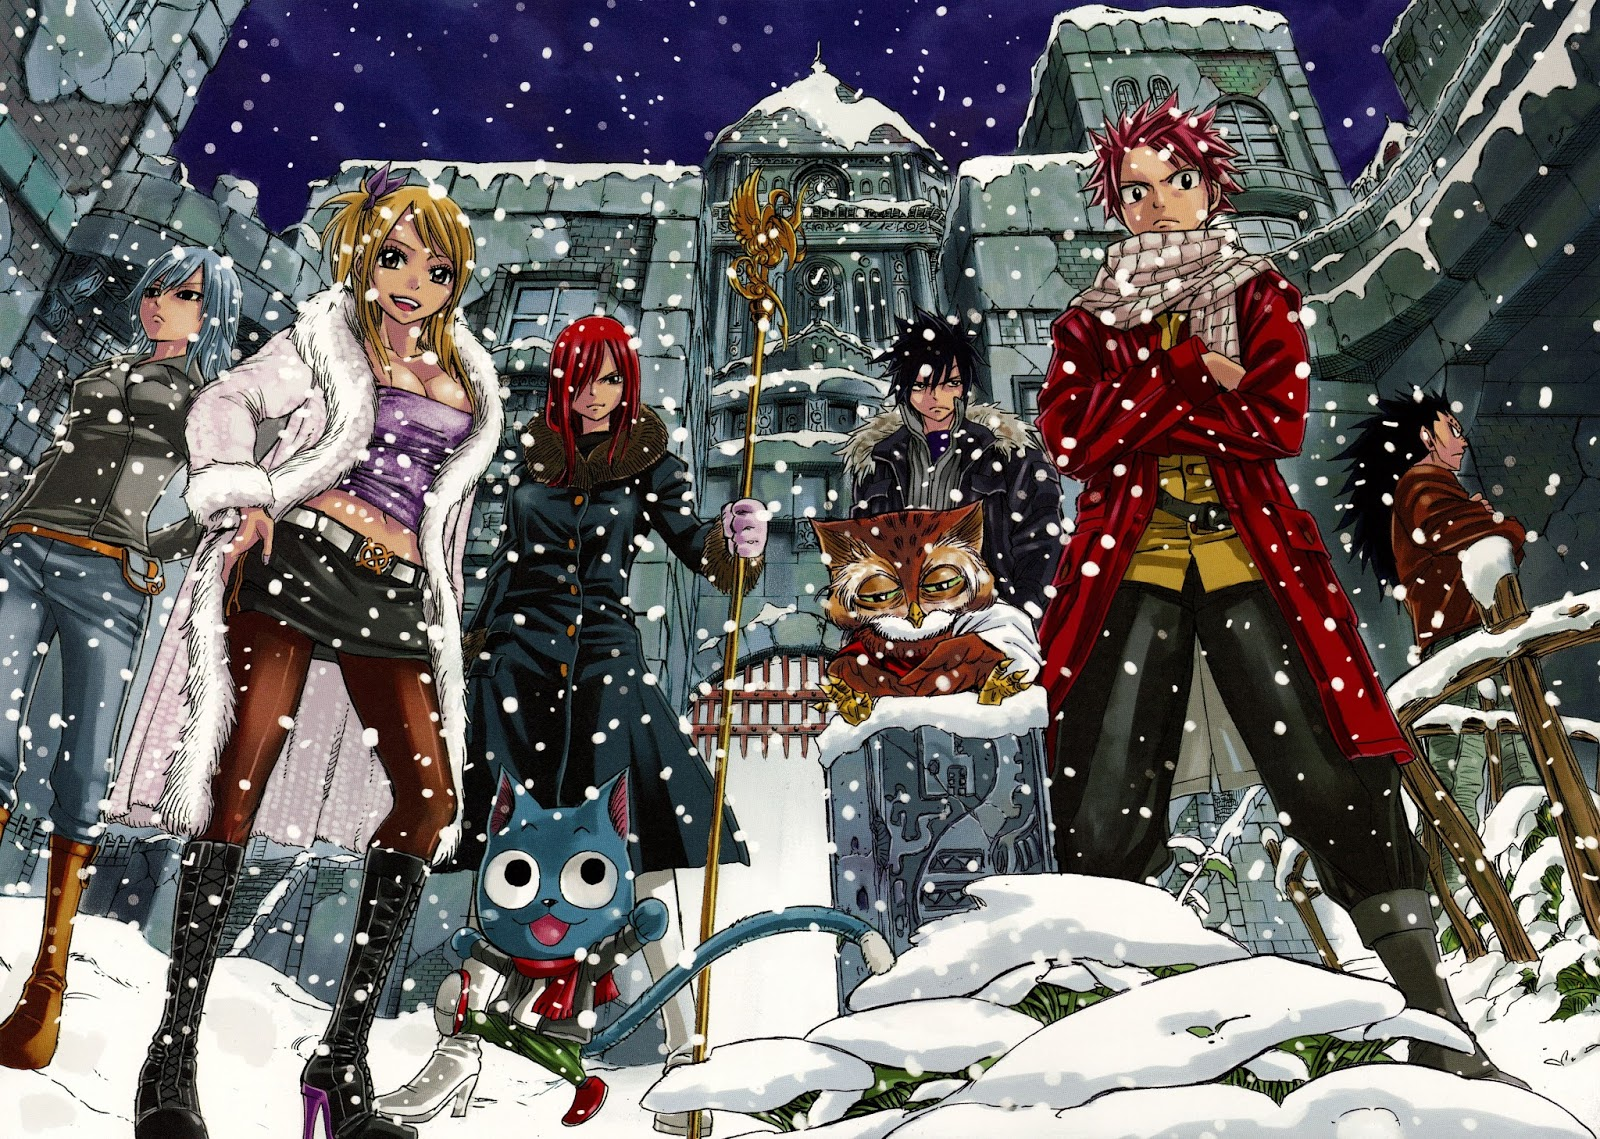 70 Anime Fairy Tail Wallpapers Hd 2020 Www Movierulz In 2020